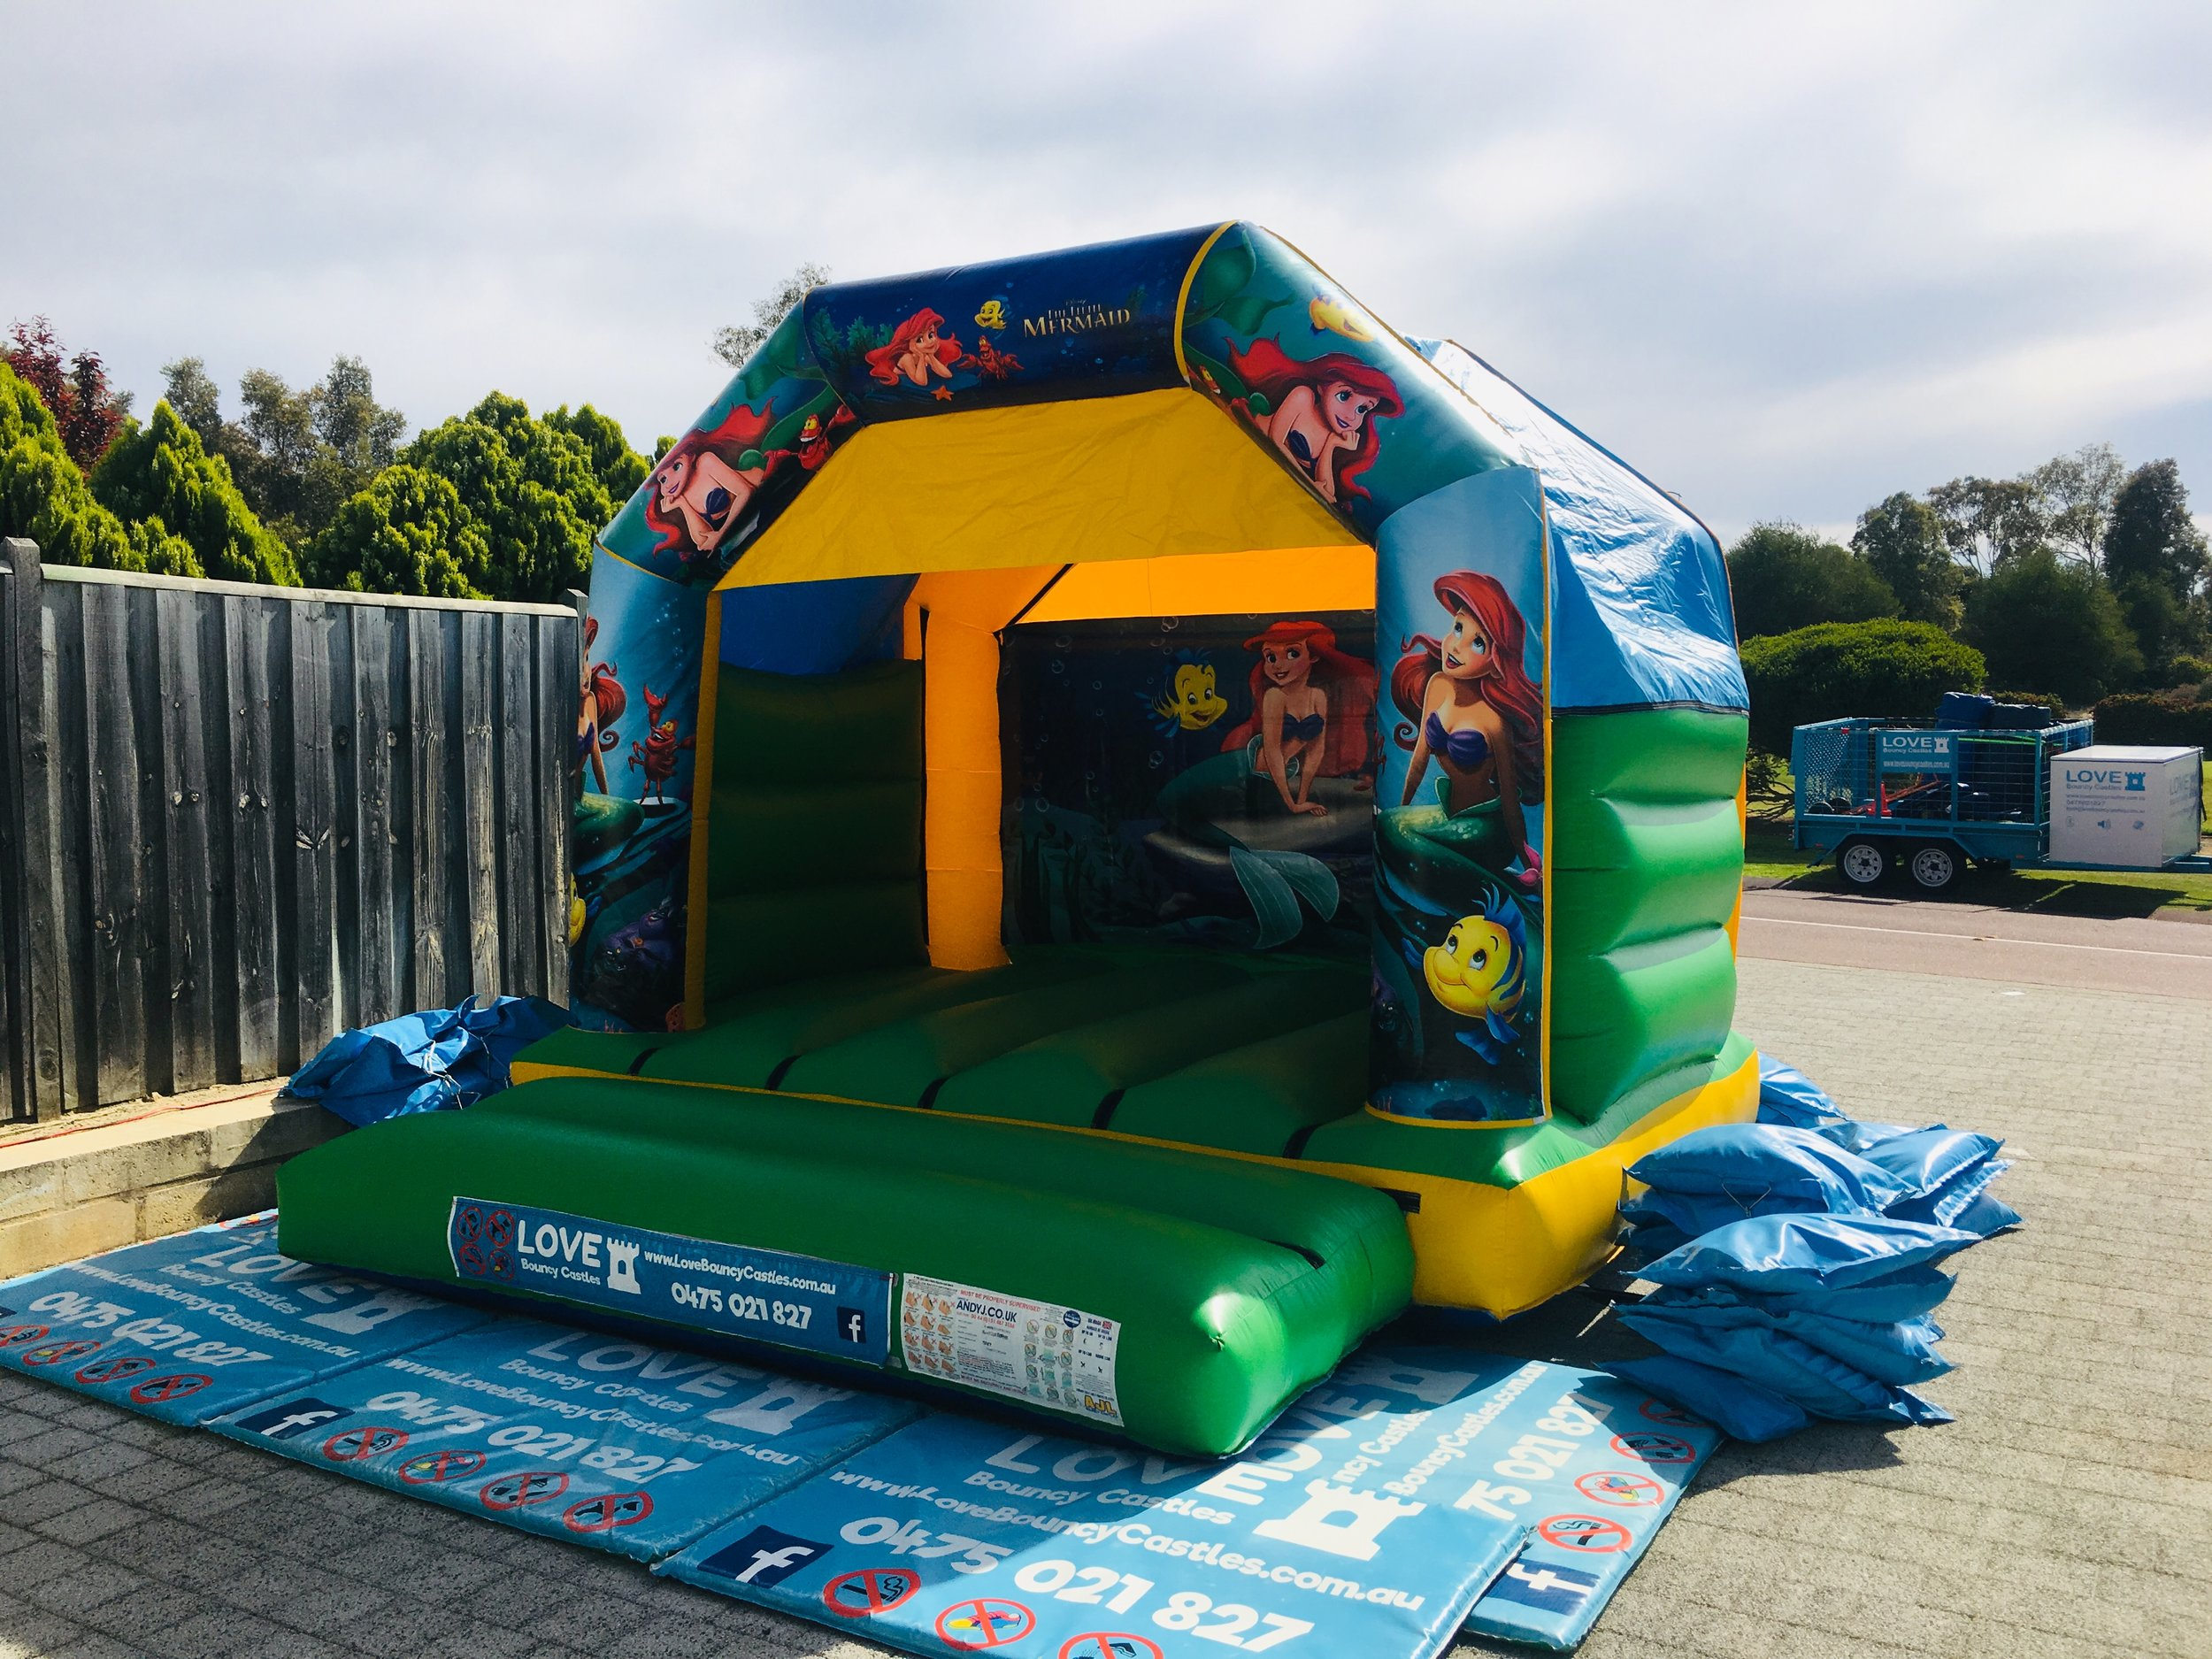 1000kg of weight is required when placing a bouncy castle on concrete. Baldivis based bouncy castle hire company